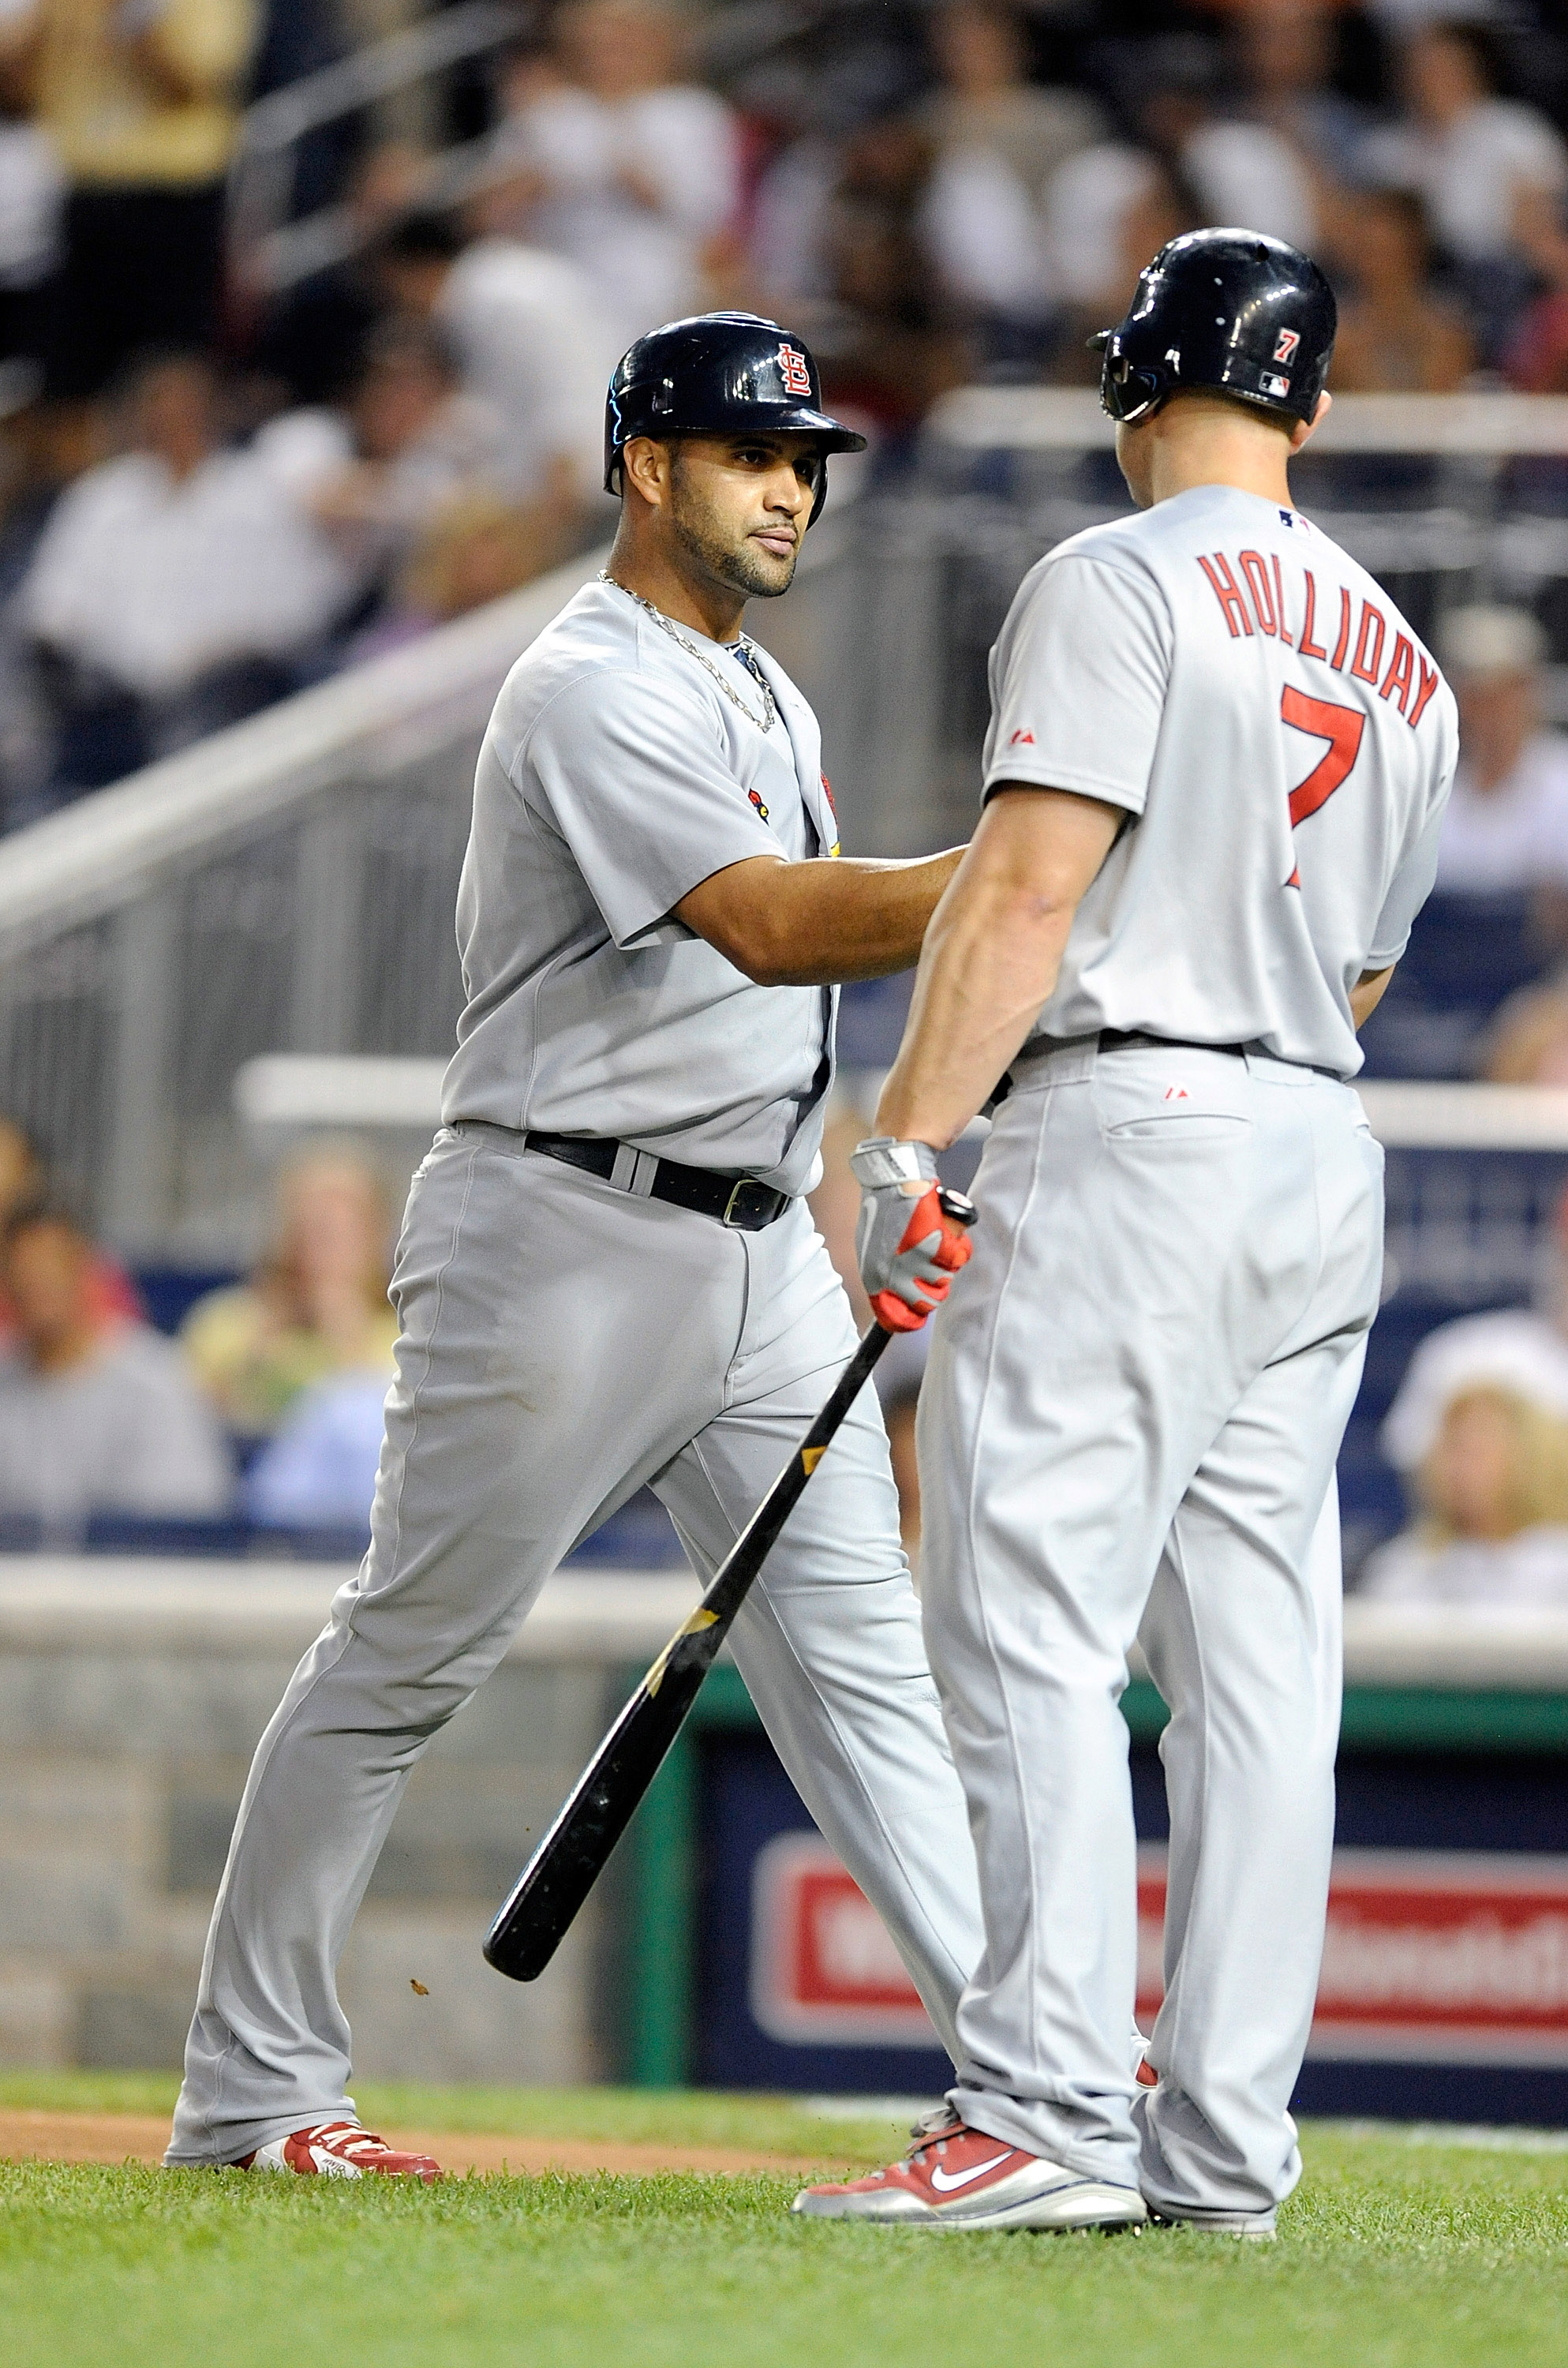 WASHINGTON - AUGUST 26:  Albert Pujols #5 of the St. Louis Cardinals is congratulated by Matt Holliday #7 after hitting a home run in the fourth inning against the Washington Nationals at Nationals Park on August 26, 2010 in Washington, DC. It was the 400